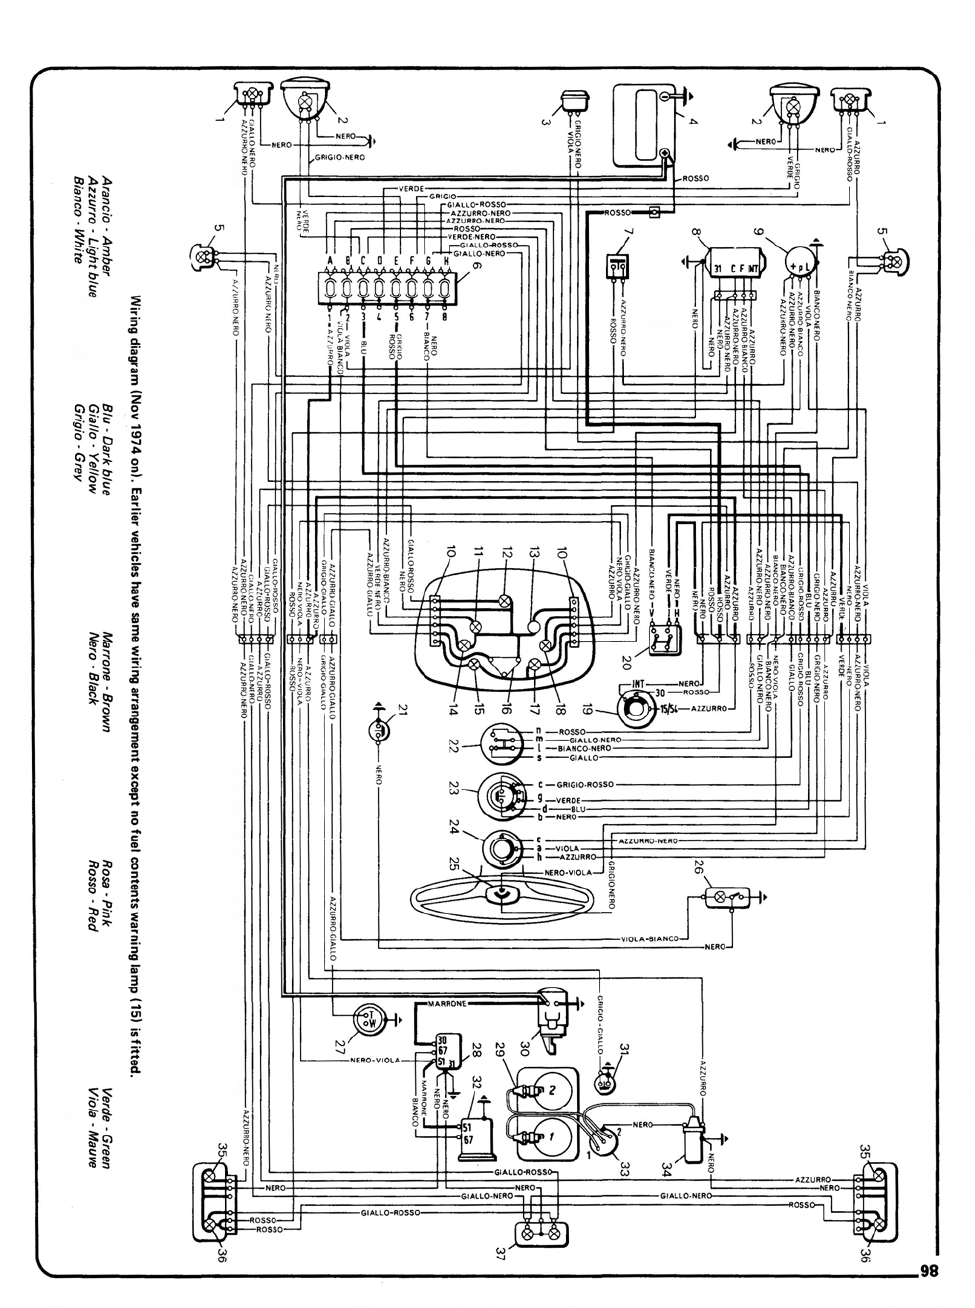 294728 Immobiliser Problem Ducato Motorhome likewise Fiat Scudo Fuse Box furthermore Tu2j2z together with Daewoo Lanos Wiring Diagram likewise 96 Lt1 Engine Diagram. on fiat doblo wiring diagram